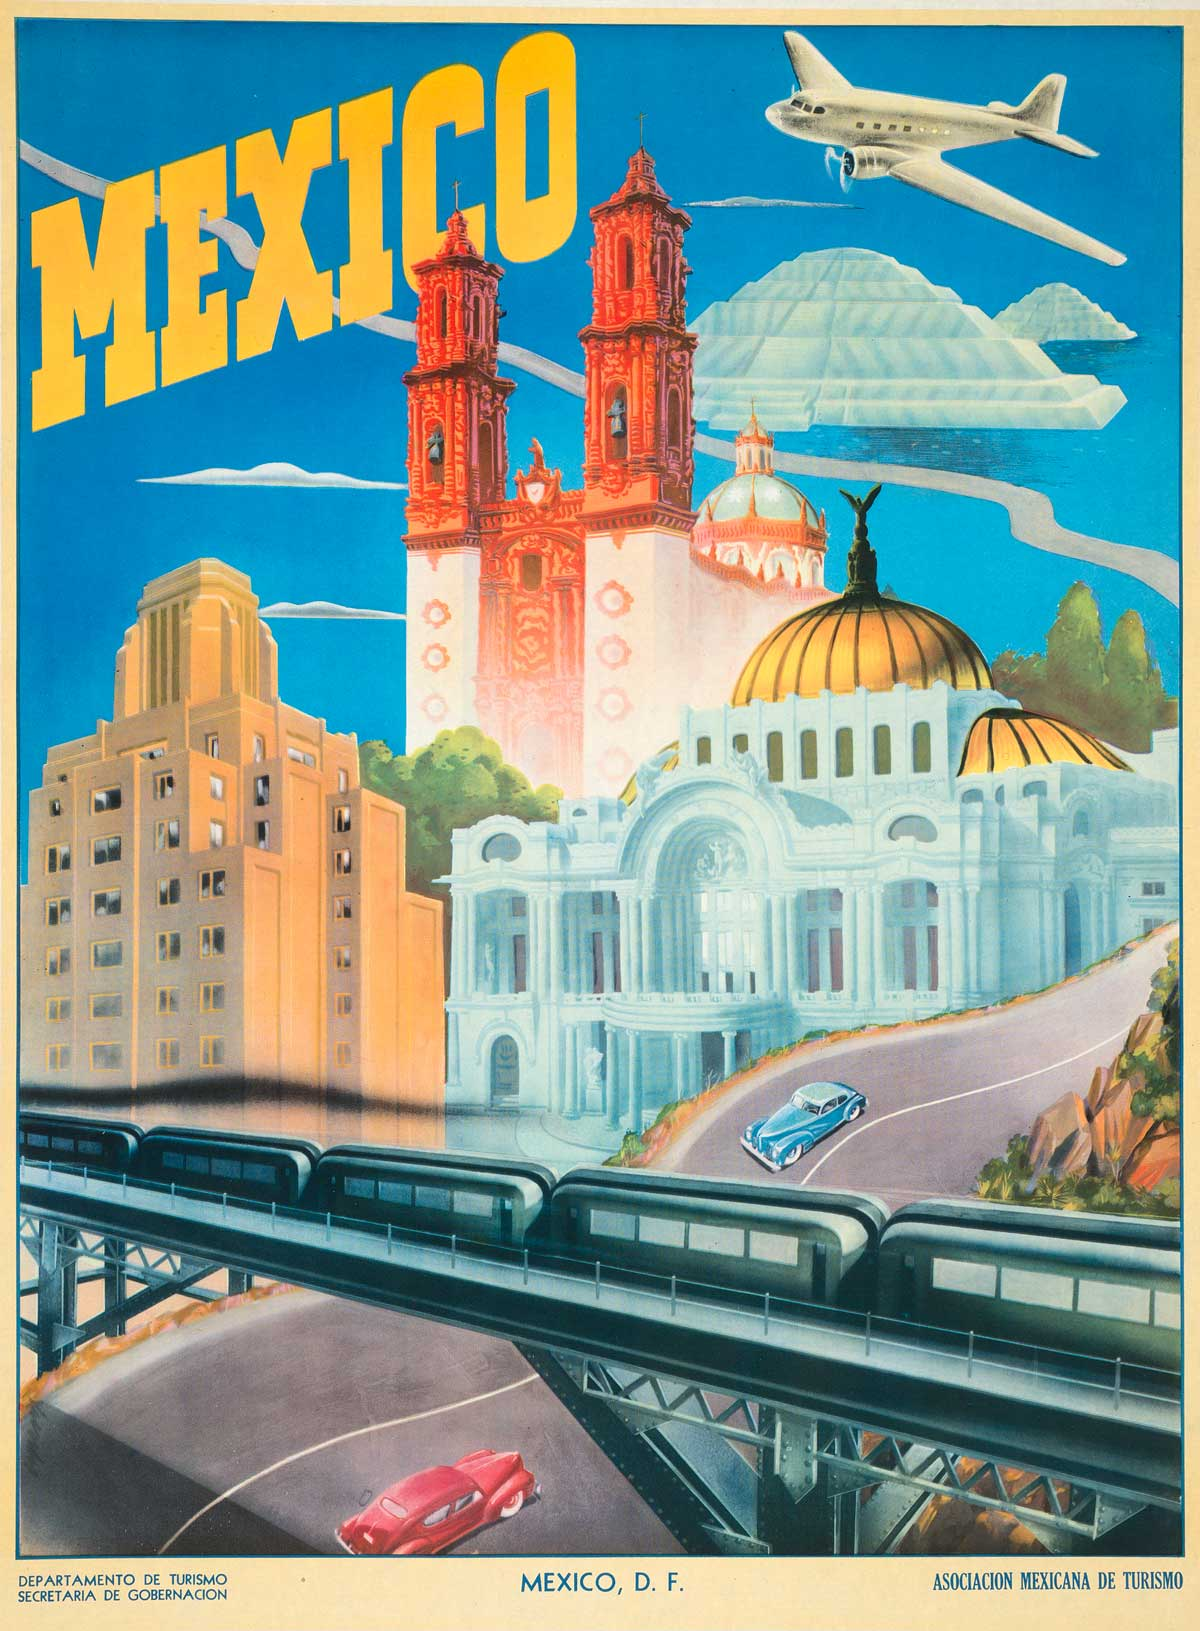 Postcard How To Build Global Community: Take Home A Little Bit Of Mexico With Vintage Travel Postcards